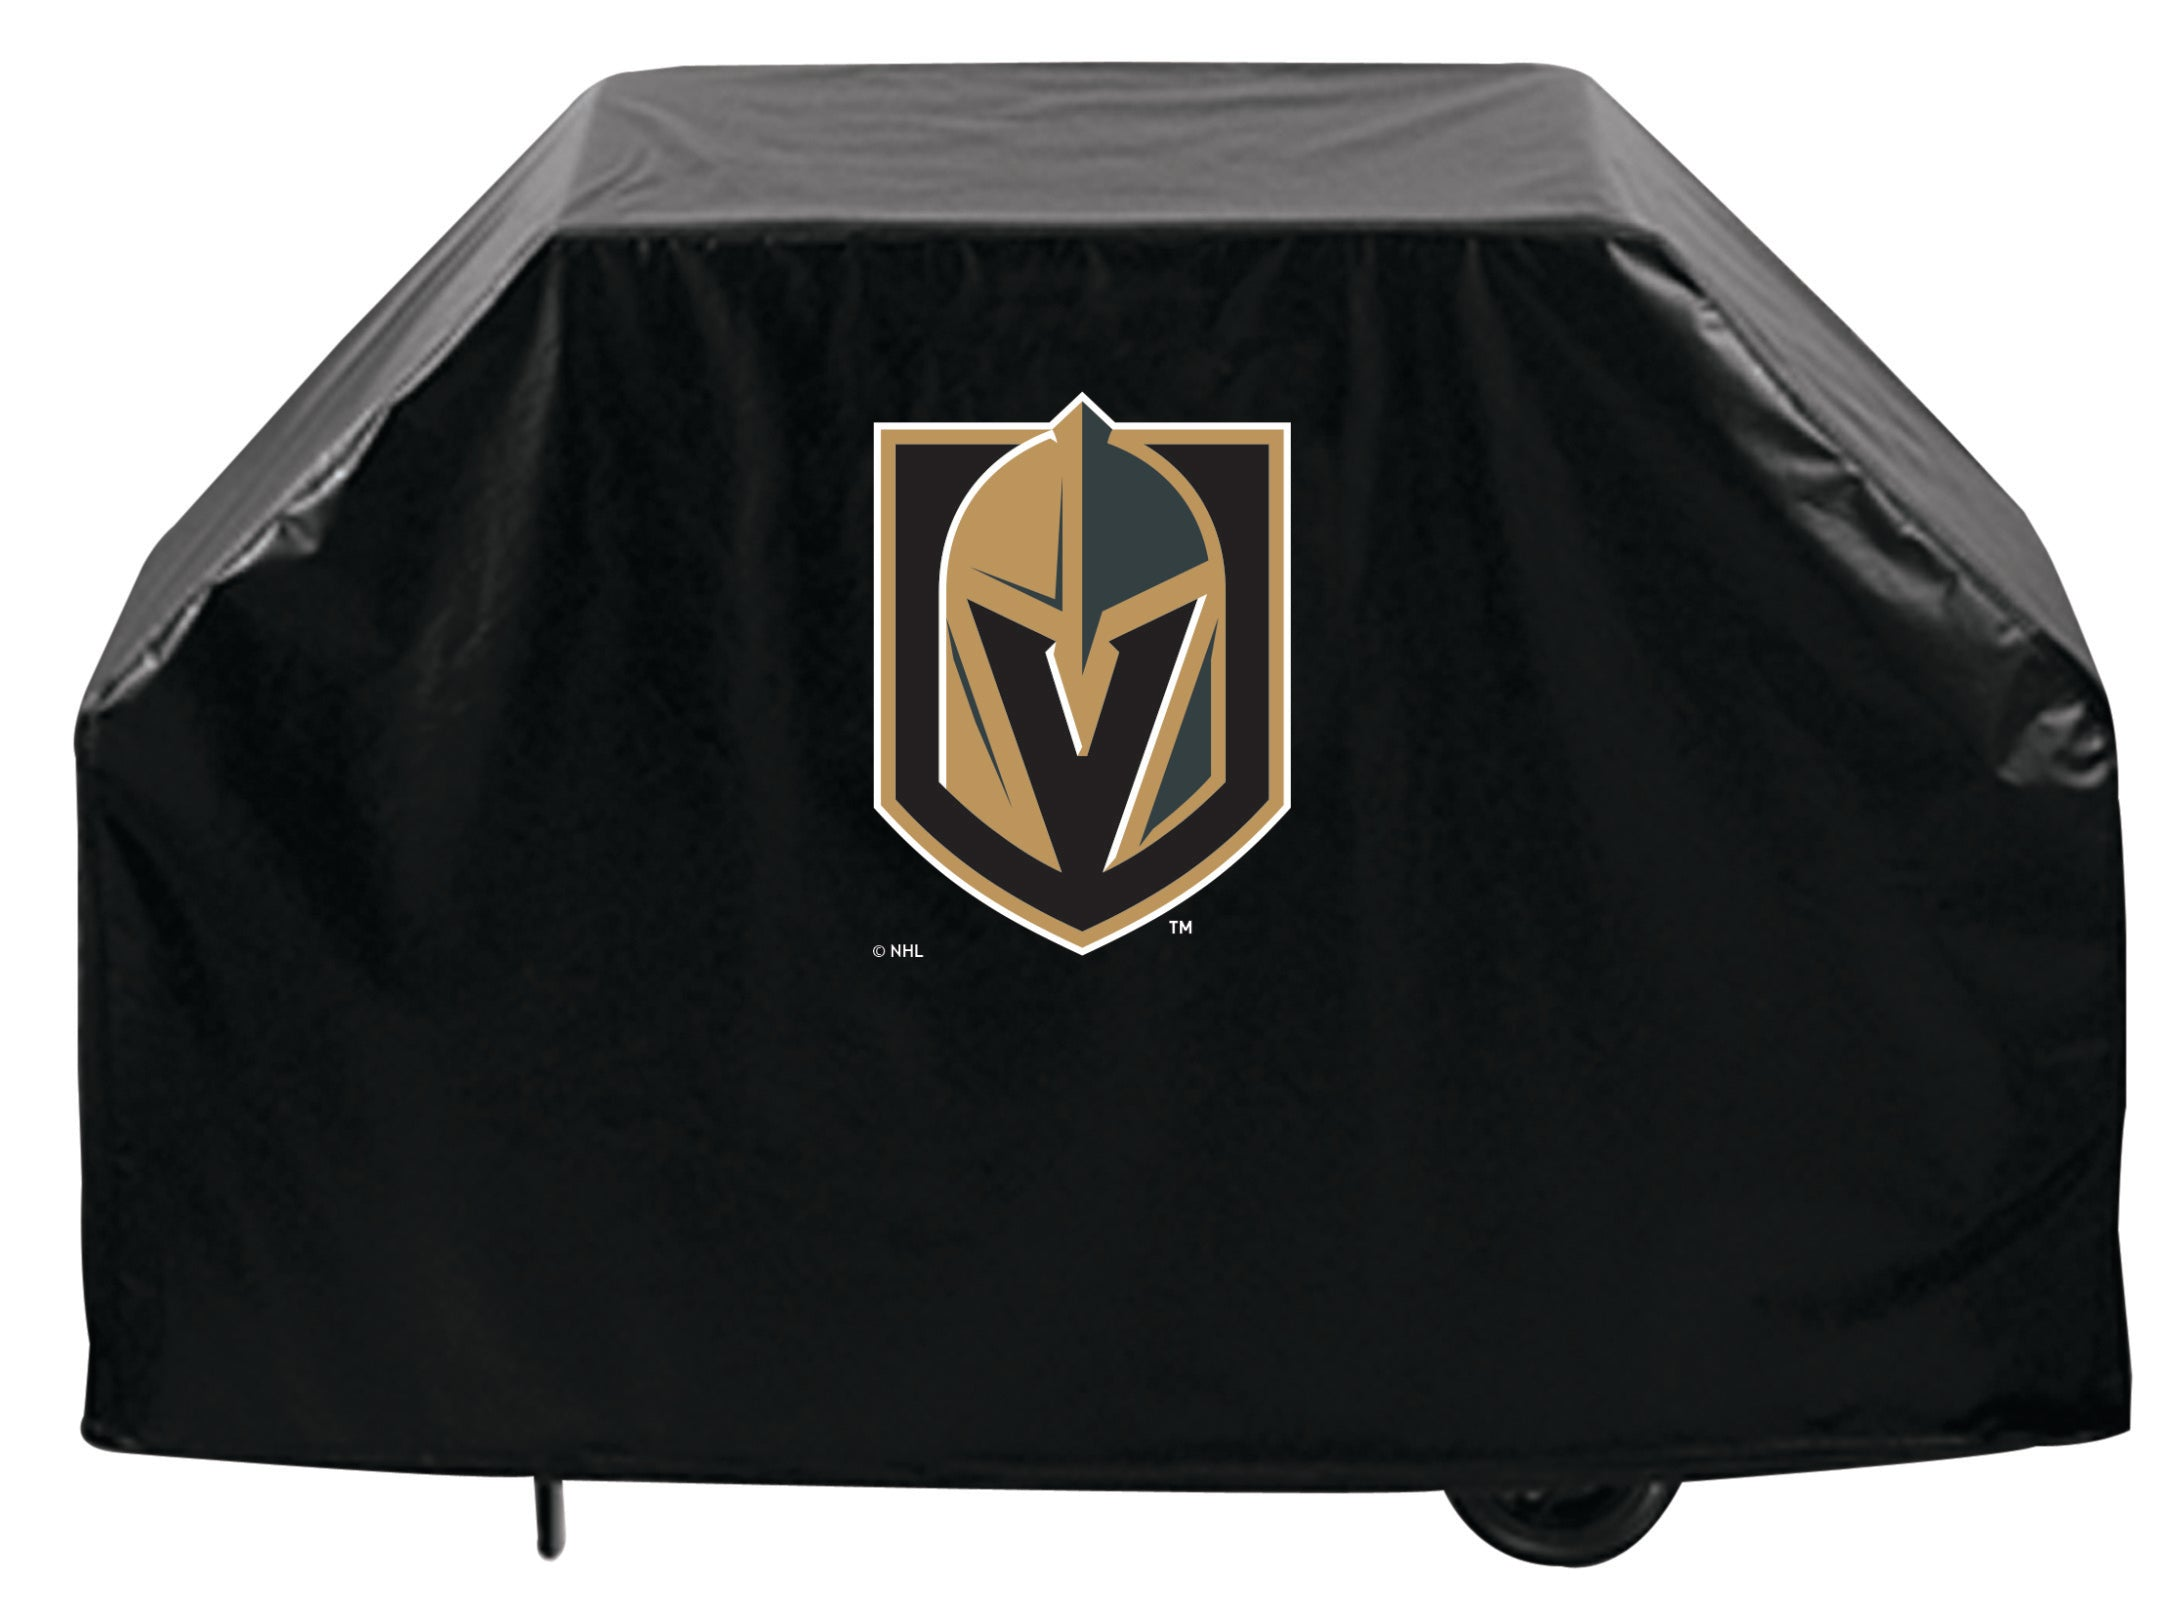 separation shoes acc73 4b133 Vegas Golden Knights BBQ Grill Cover | Grill-Cover-Store